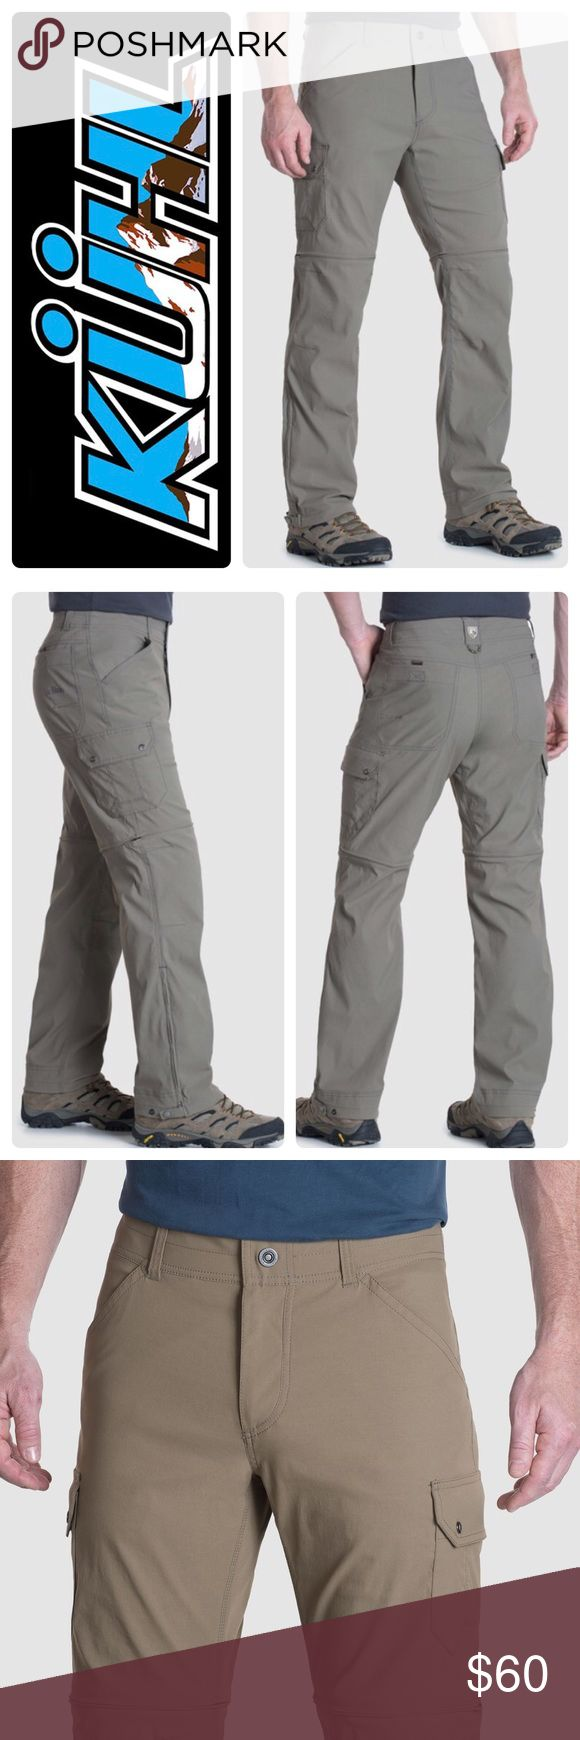 """New Küll Renegade™ Cargo Convertible  Pants Khaki The updated KÜHL RENEGADE™ CARGO CONVERTIBLE PANT opposes conventional thought to deliver superior performance, comfort and style. Cut from innovative DURALUX™, the durable softshell fabric feels like cotton to the touch. Stronger, more breathable, and boasting superior anti-abrasion and quick dry properties, DURALUX with DWR outperforms standard nylon and provides UPF 50 sun protection. Color - khaki. Size 40"""", inseam 30"""". Original price…"""